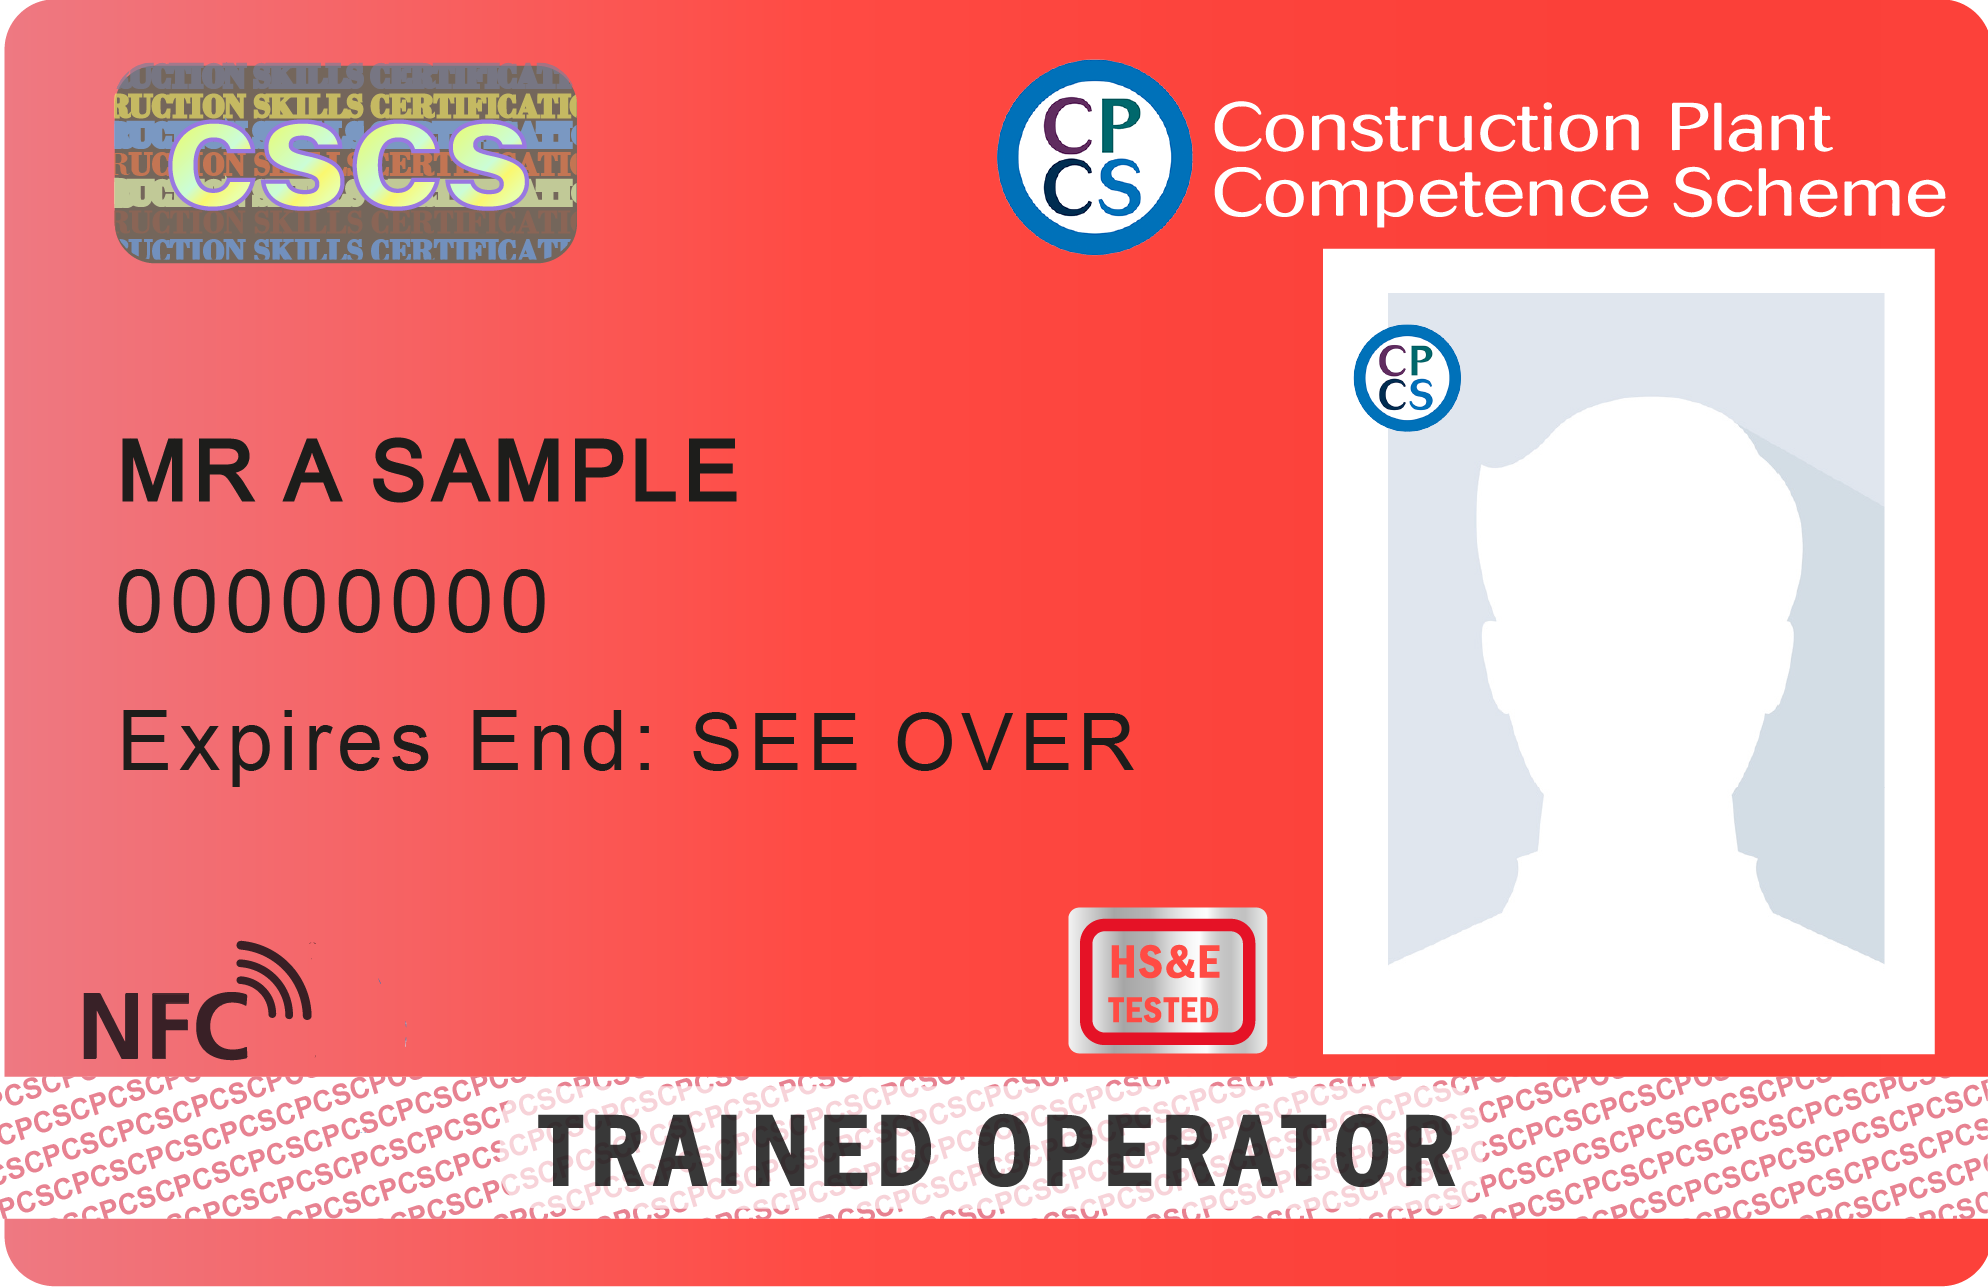 CPCS-New Trained Operator Card